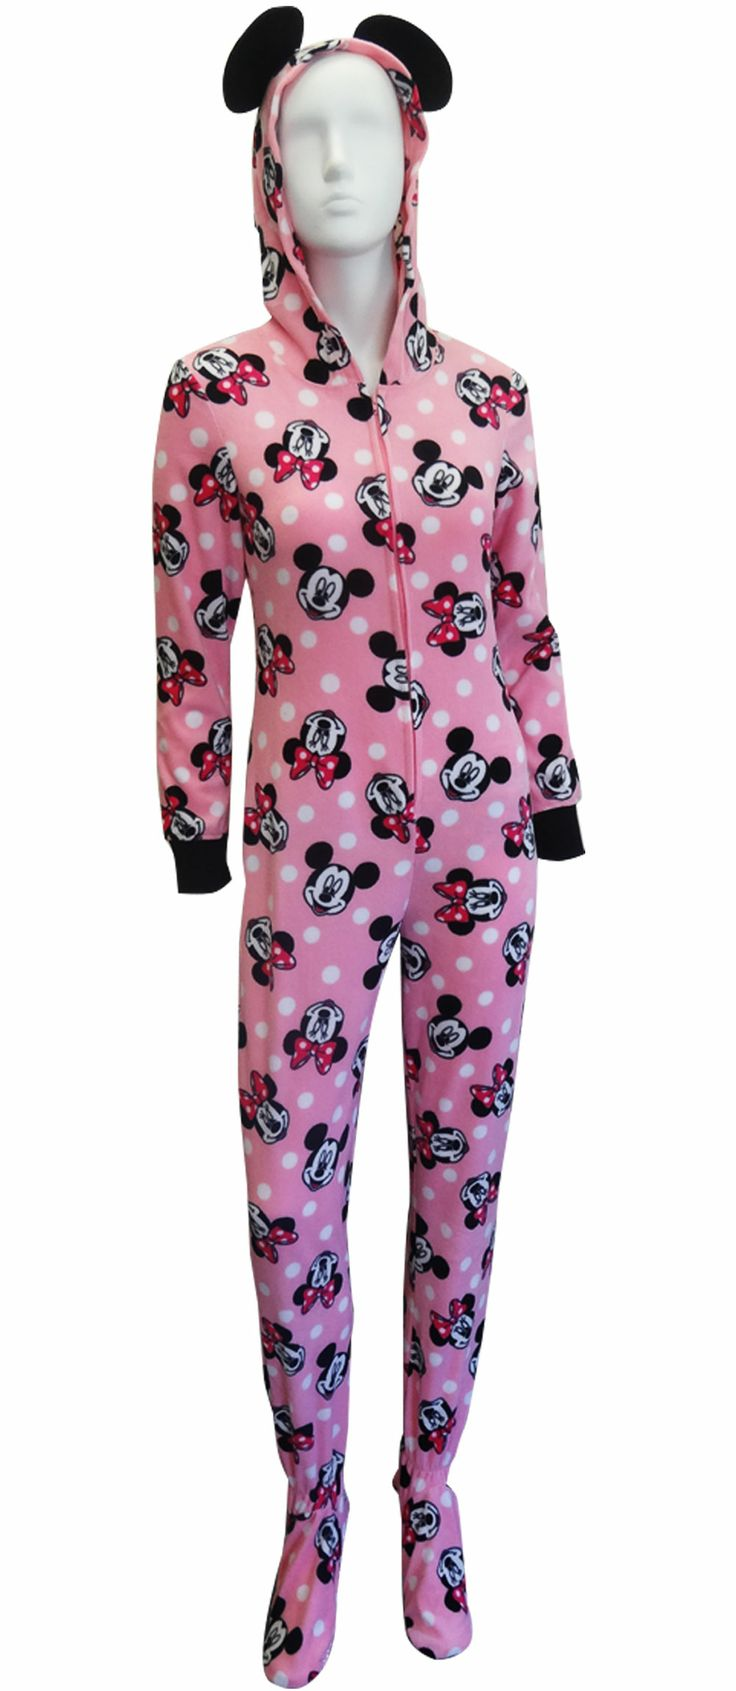 Bodysuits & Onesies Costumes Outfits & Sets Women's Sleepwear. Wear dreamZzz come true. VISIT OUR SLEEP SHOP. 48 Products. Filter By (48 Results) Done. Mickey and Minnie Mouse Pajama Set for Women by Munki Munki. Mickey and Minnie Mouse Pajama Set for Women by Munki Munki. $